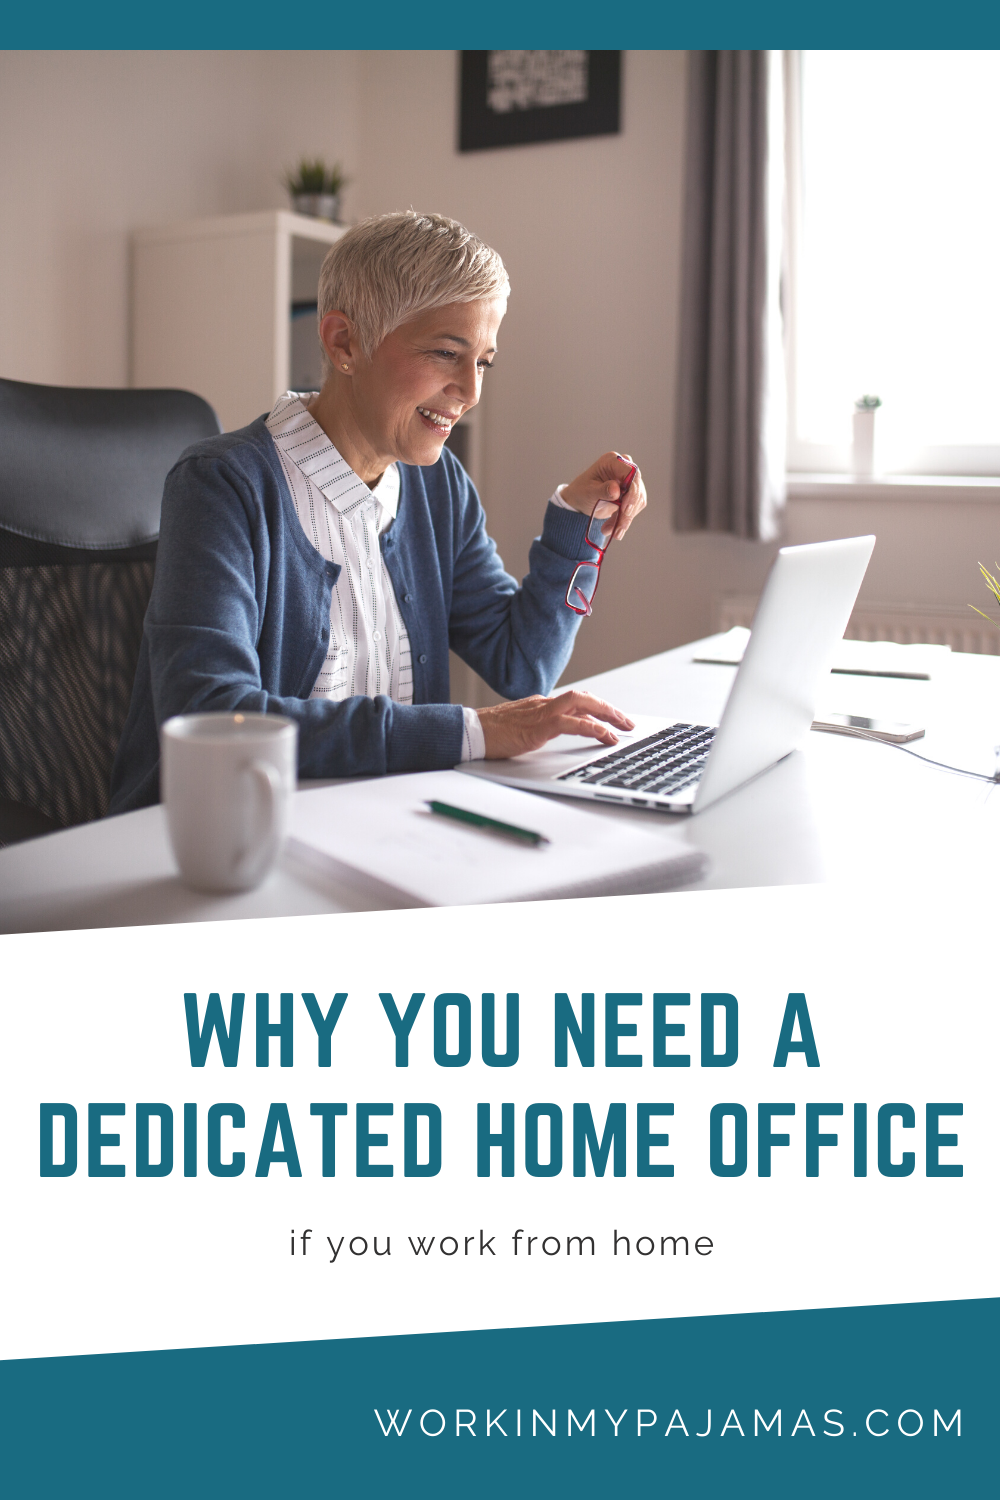 The Importance Of Having A Dedicated Home Office If You Work From Home